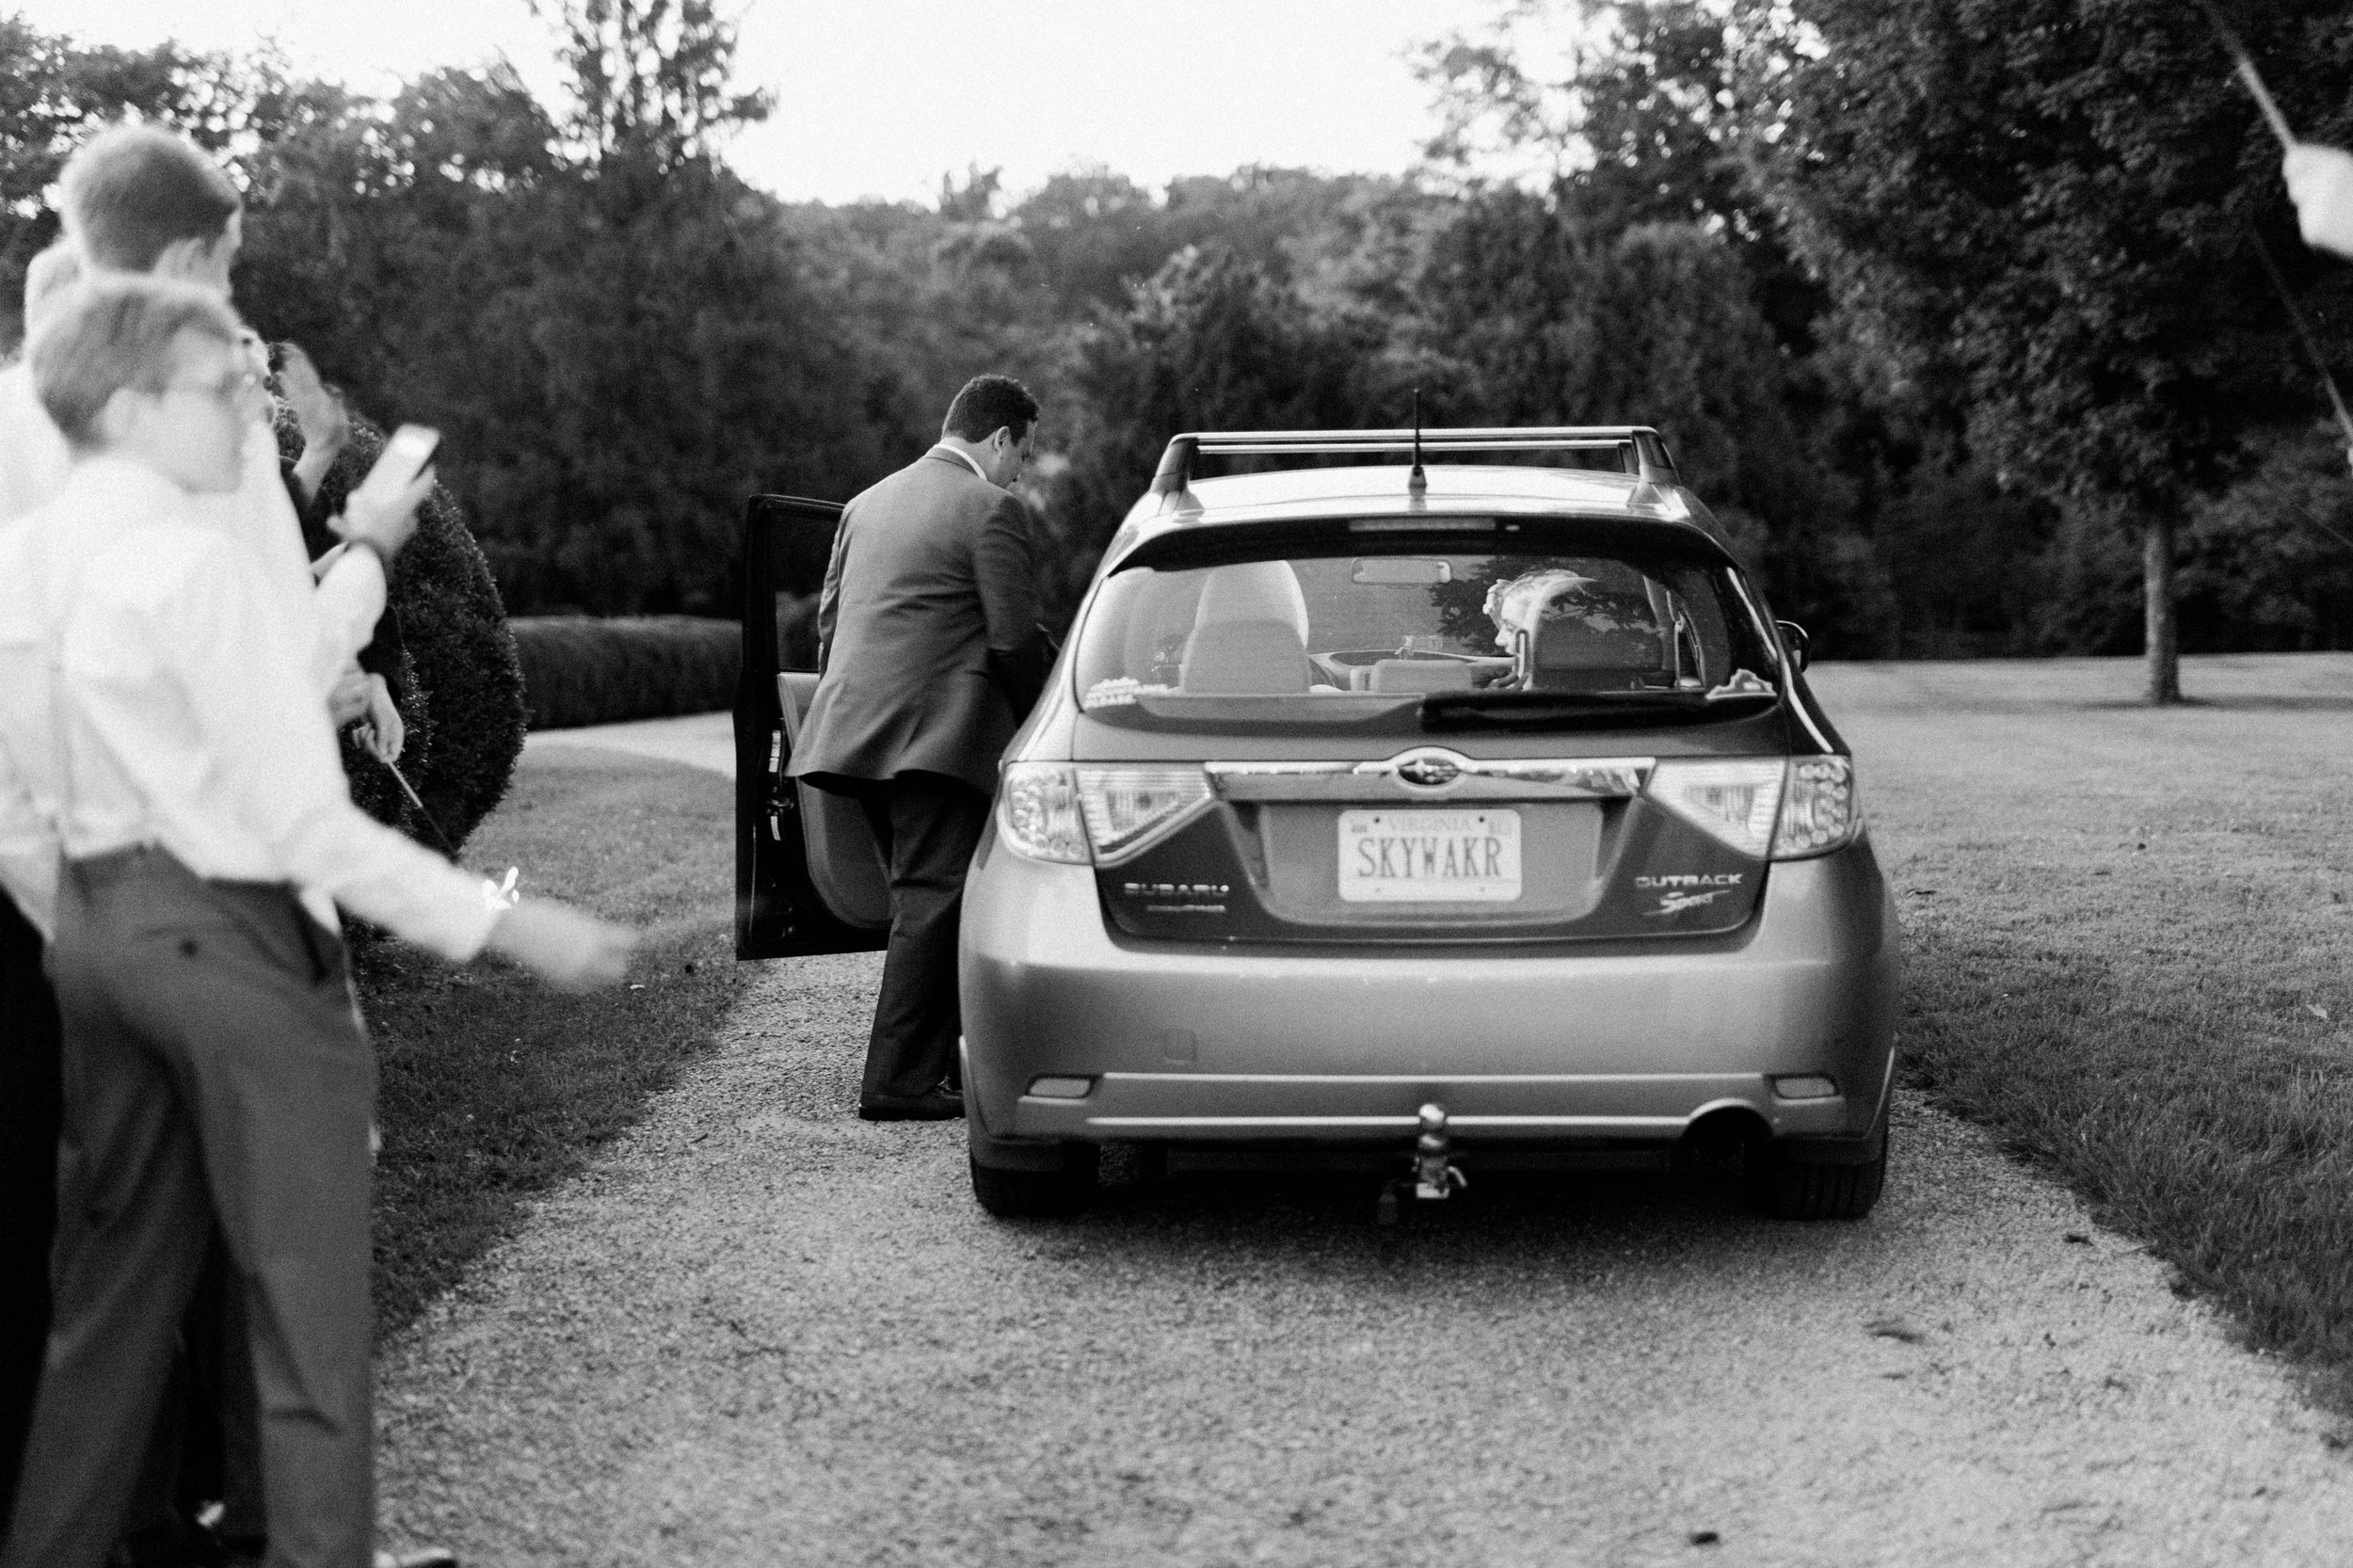 westmanorestate_entwinedevents_lynchburgweddingphotographer_Virginiaweddingphotographer_kateyam 19.jpg